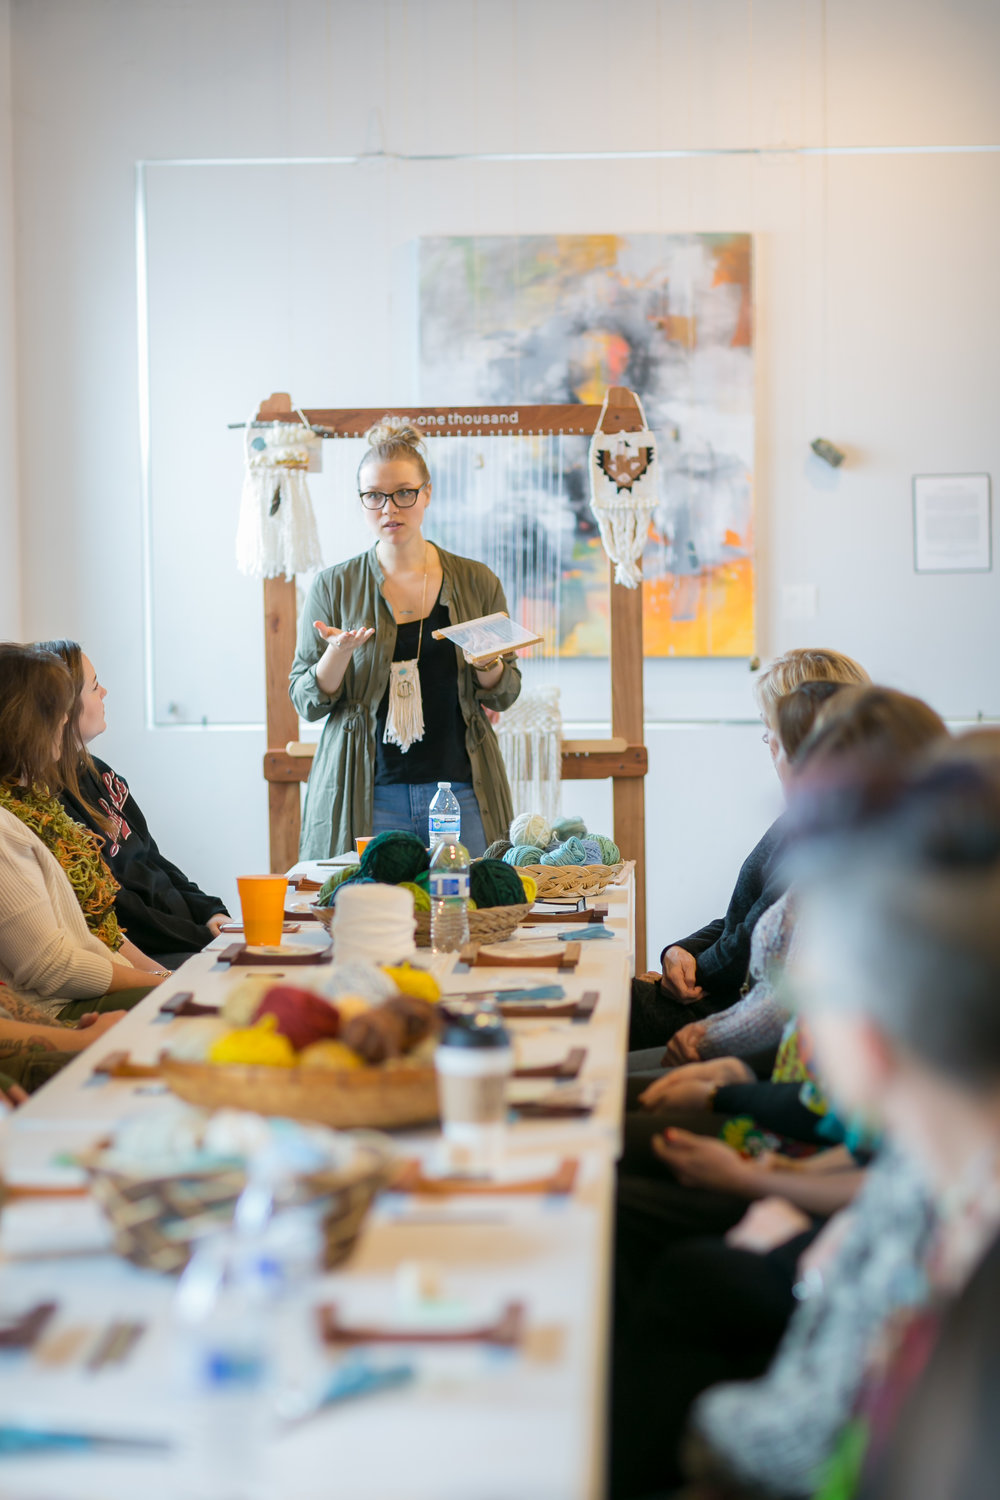 MELISSA JENKINS DESIGNS WEAVING WORKSHOP